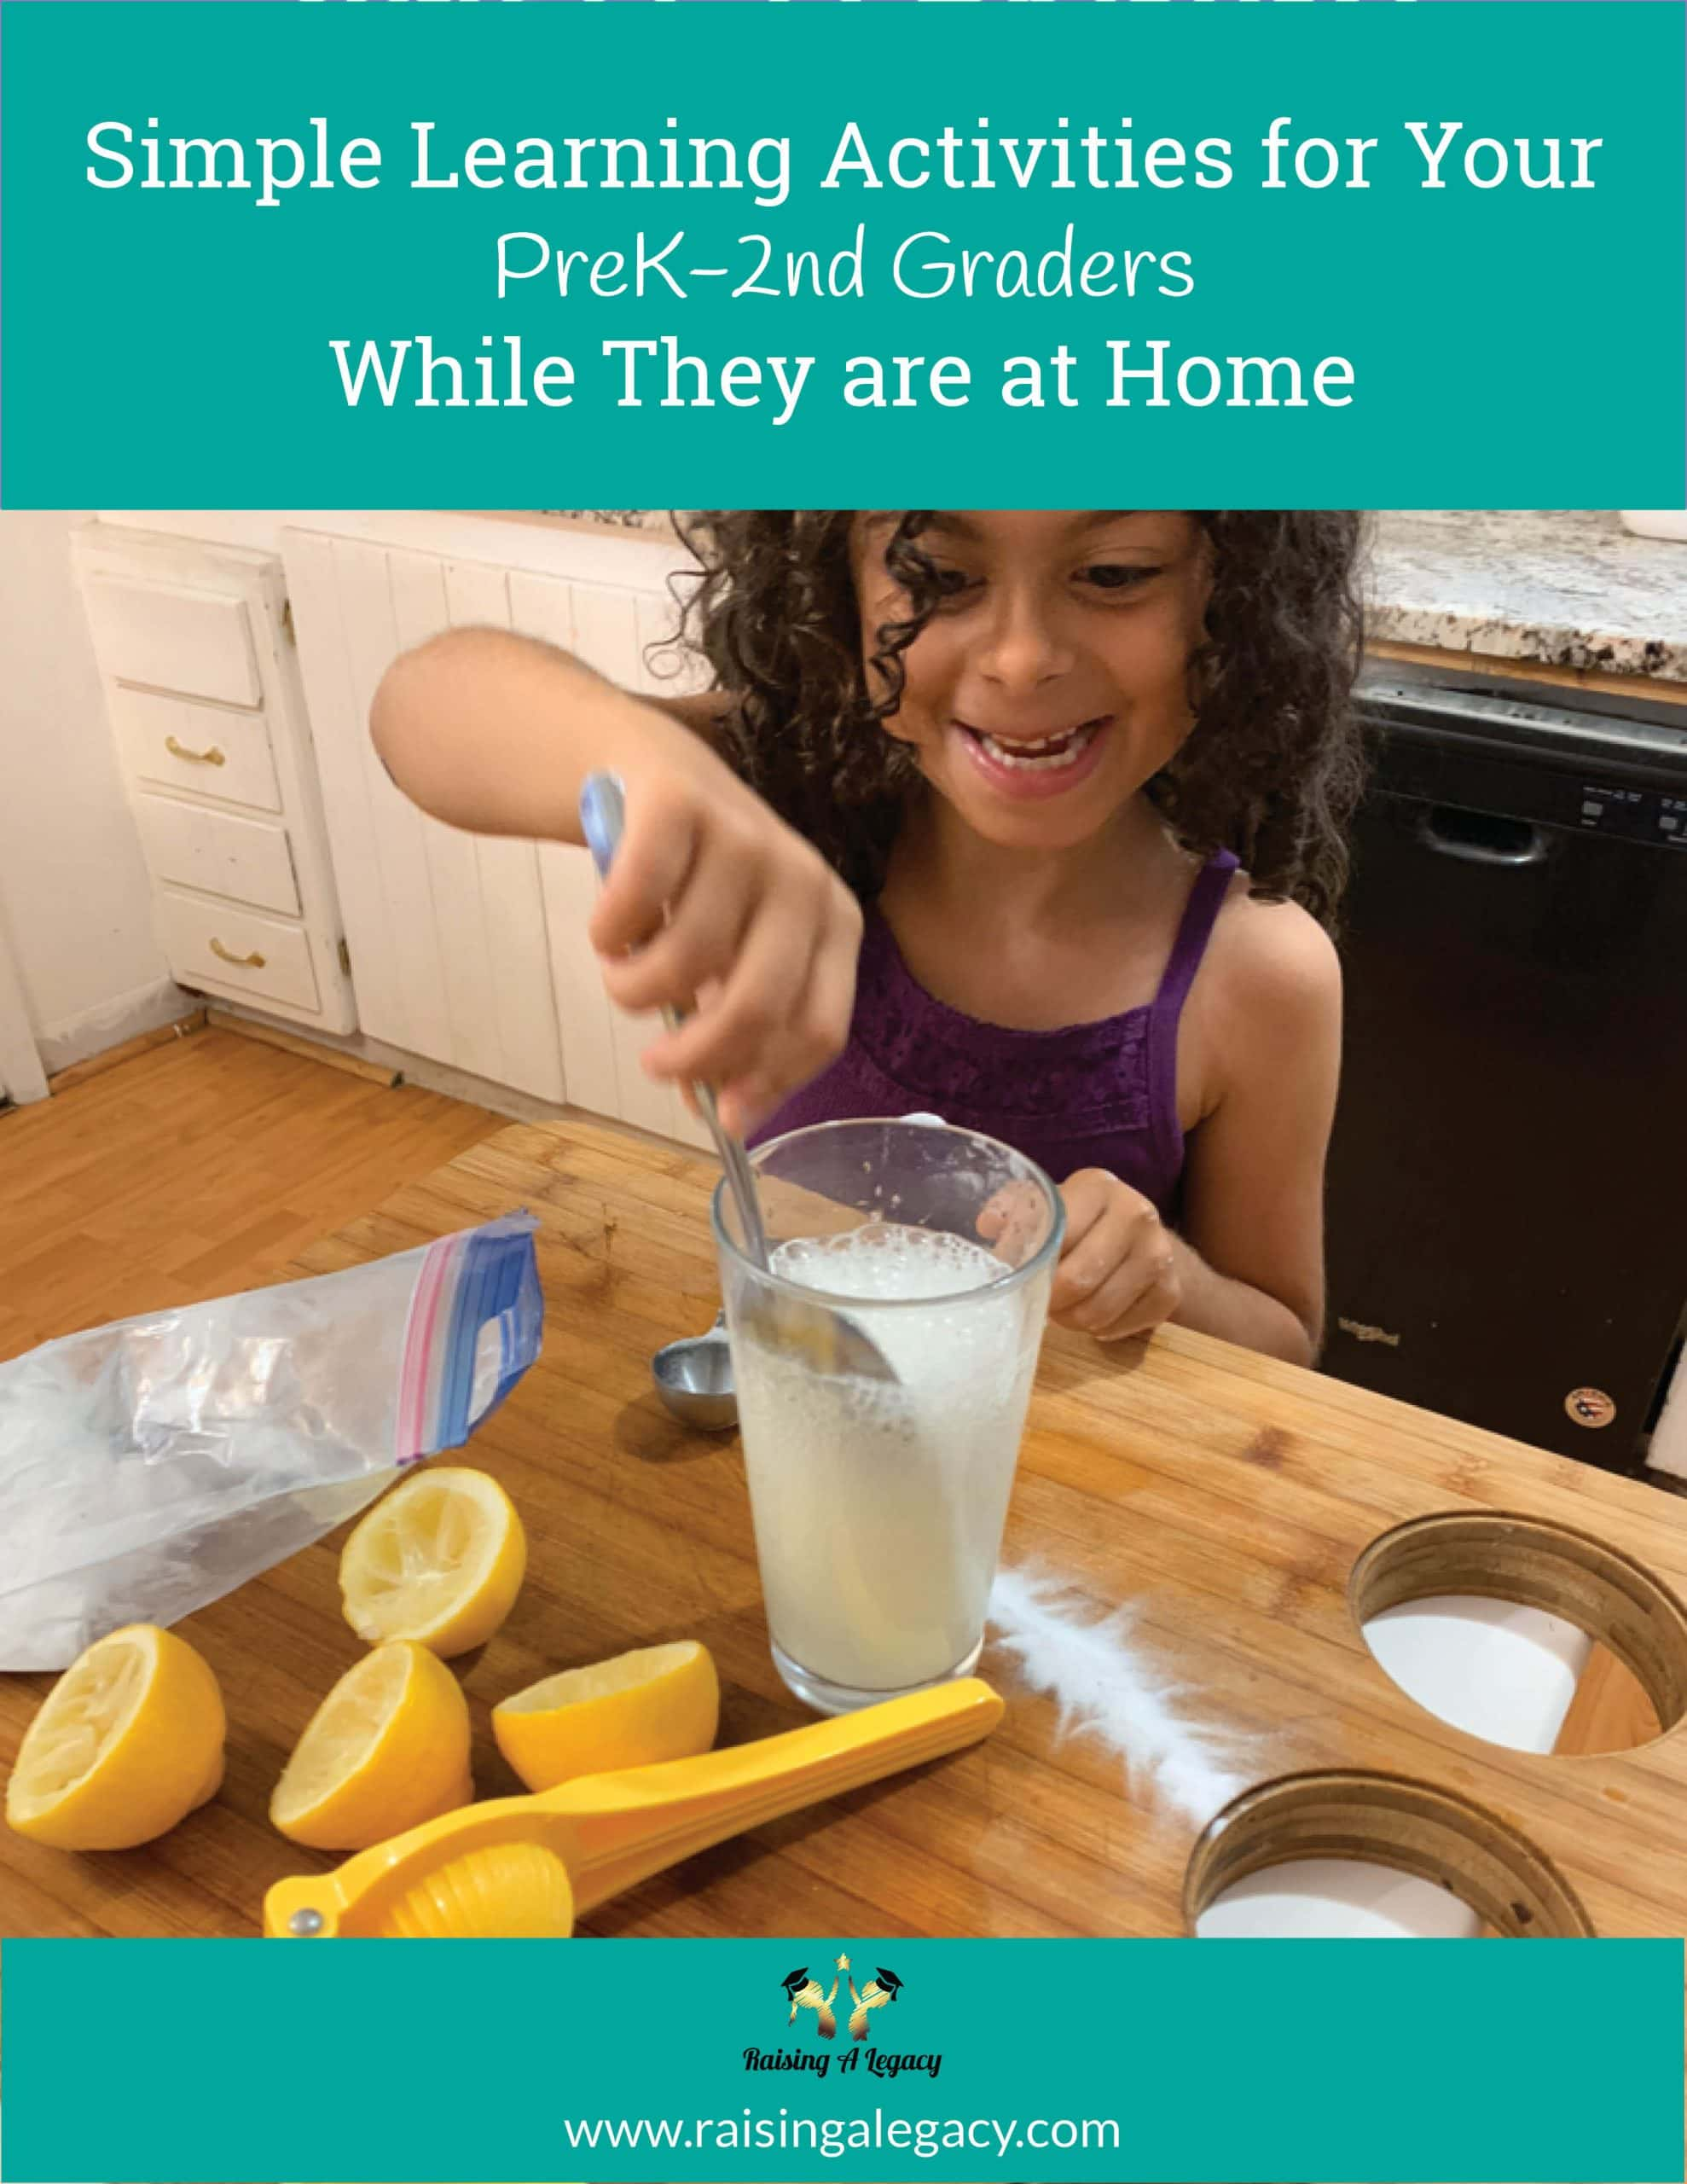 Simple Learning Activities for Your PreK-2nd Kids While They are at Home